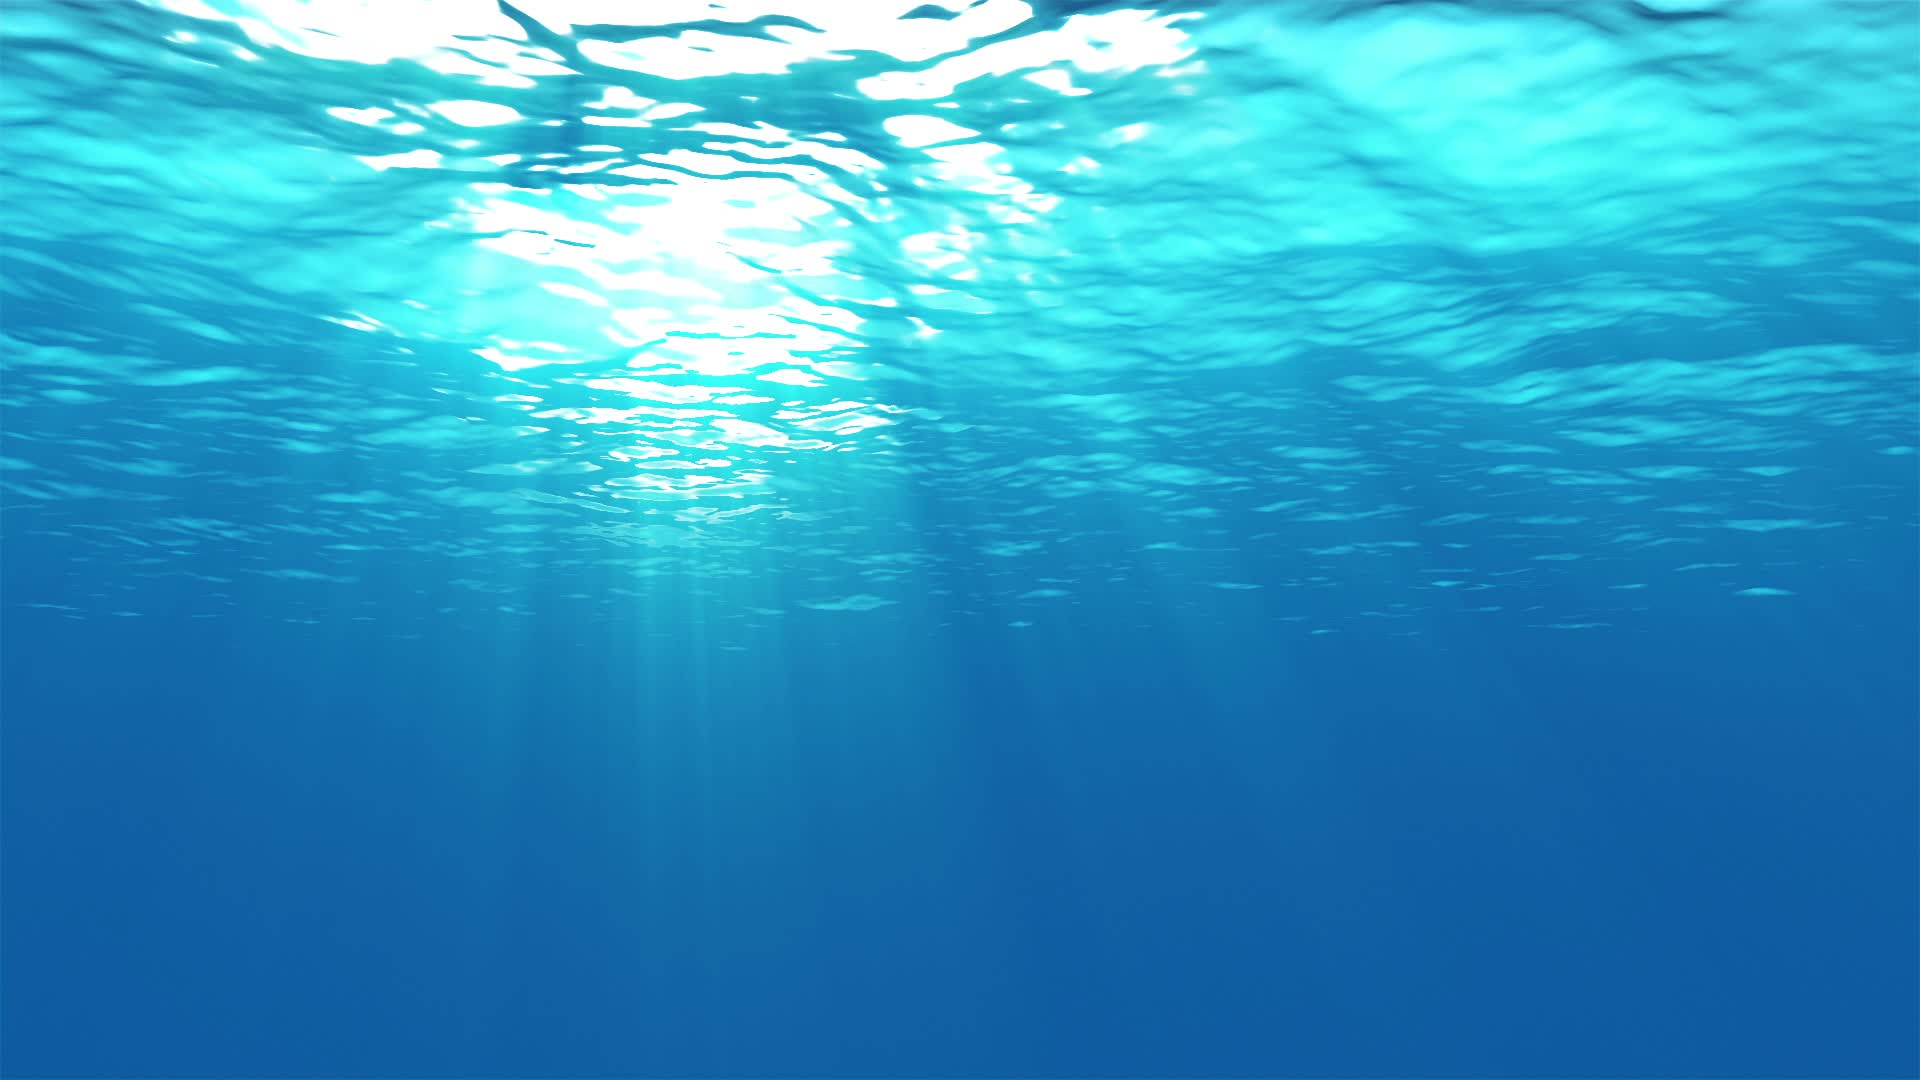 Underwater ~ High Resolution ~ Hi Res Video #24397311